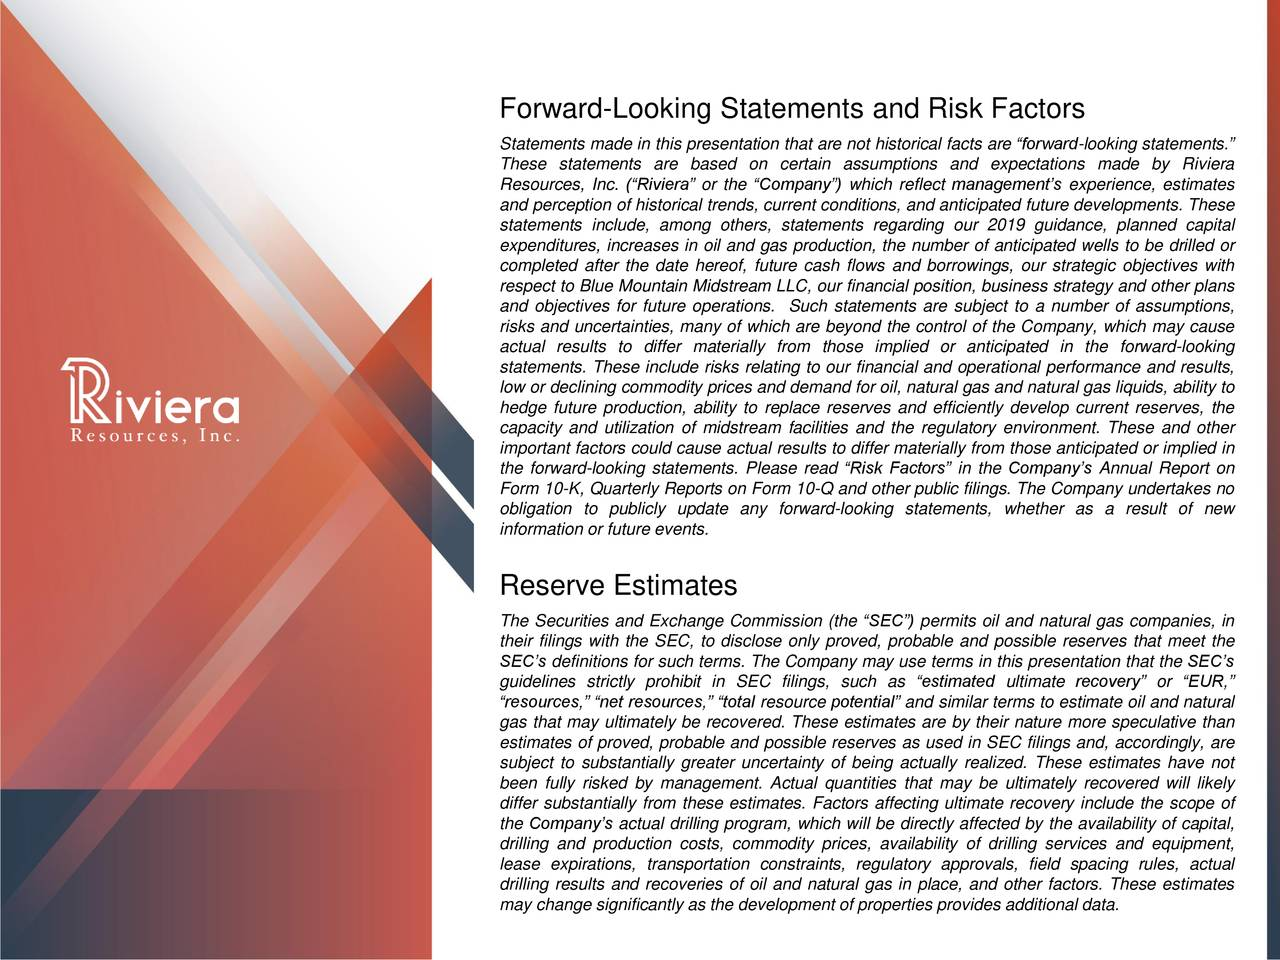 Forward-Looking Statements and Risk Factors